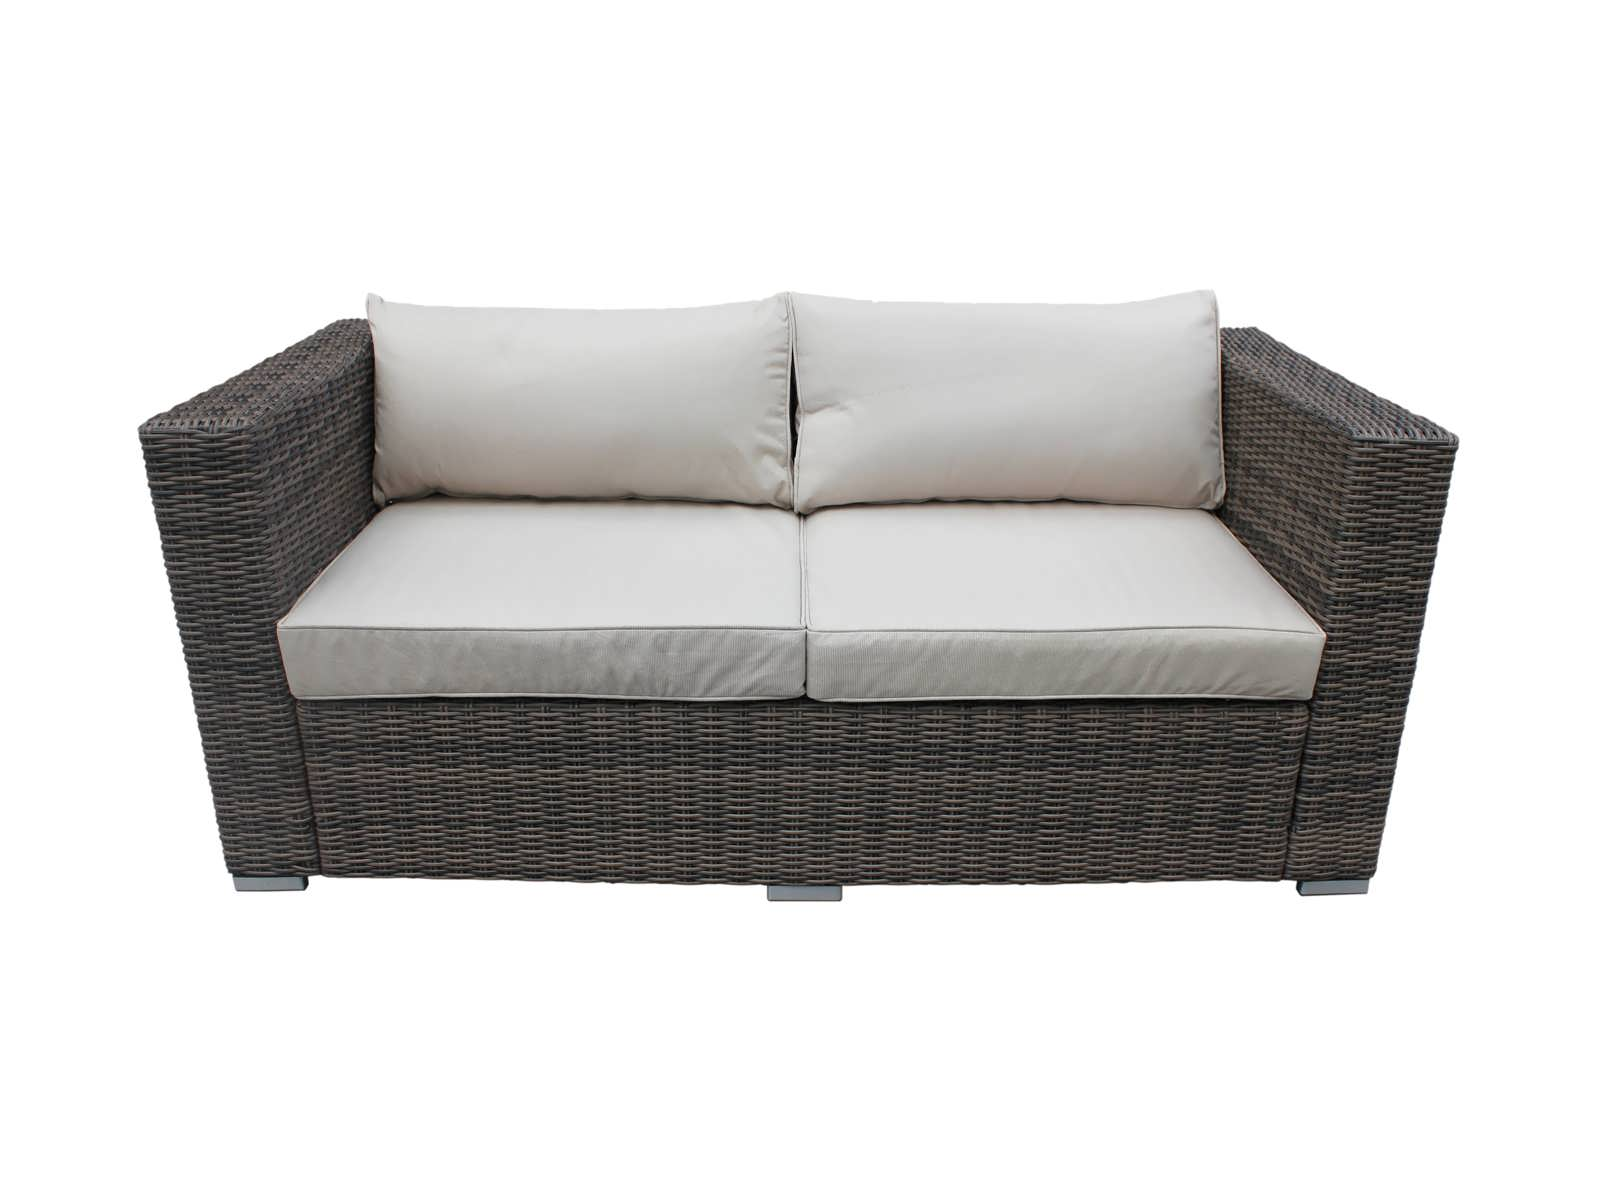 2 seater garden sofa uk. Black Bedroom Furniture Sets. Home Design Ideas